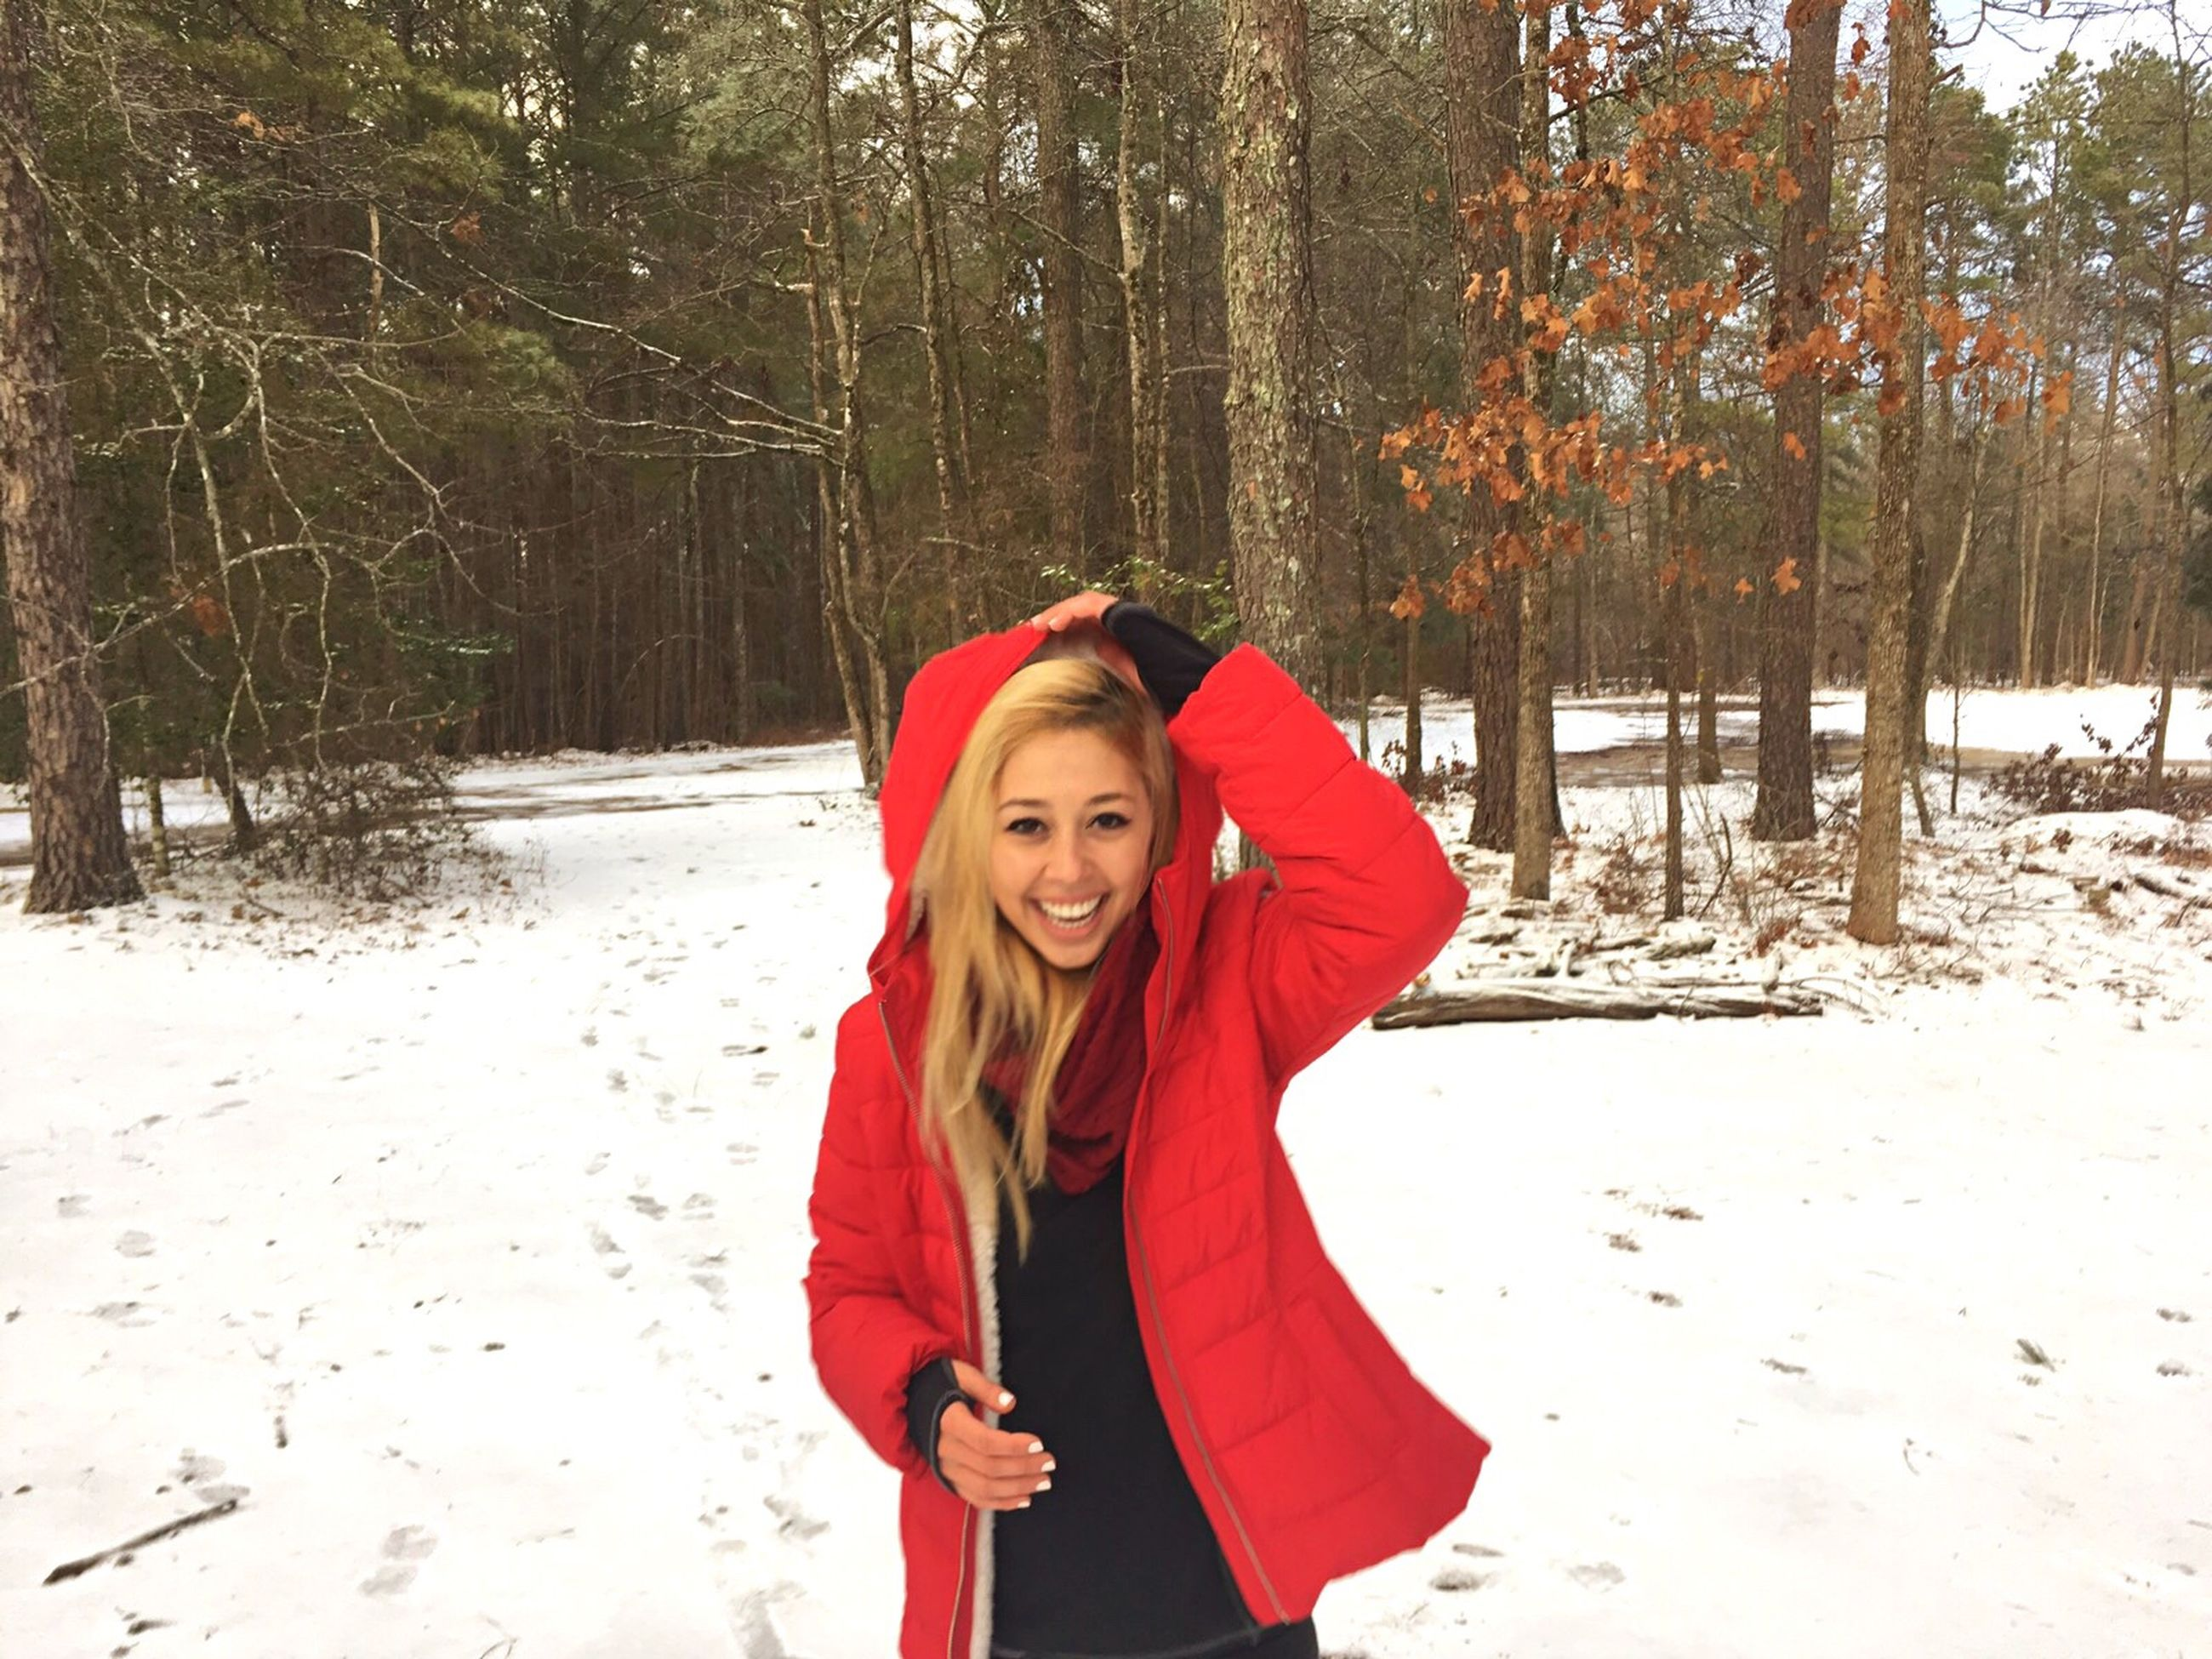 snow, portrait, winter, cold temperature, vitality, young adult, smiling, one woman only, looking at camera, tree, confidence, only women, red, warm clothing, beauty, beautiful woman, blond hair, front view, long hair, one young woman only, one person, young women, leisure activity, happiness, adults only, people, standing, adult, cheerful, women, day, outdoors, nature, beauty in nature